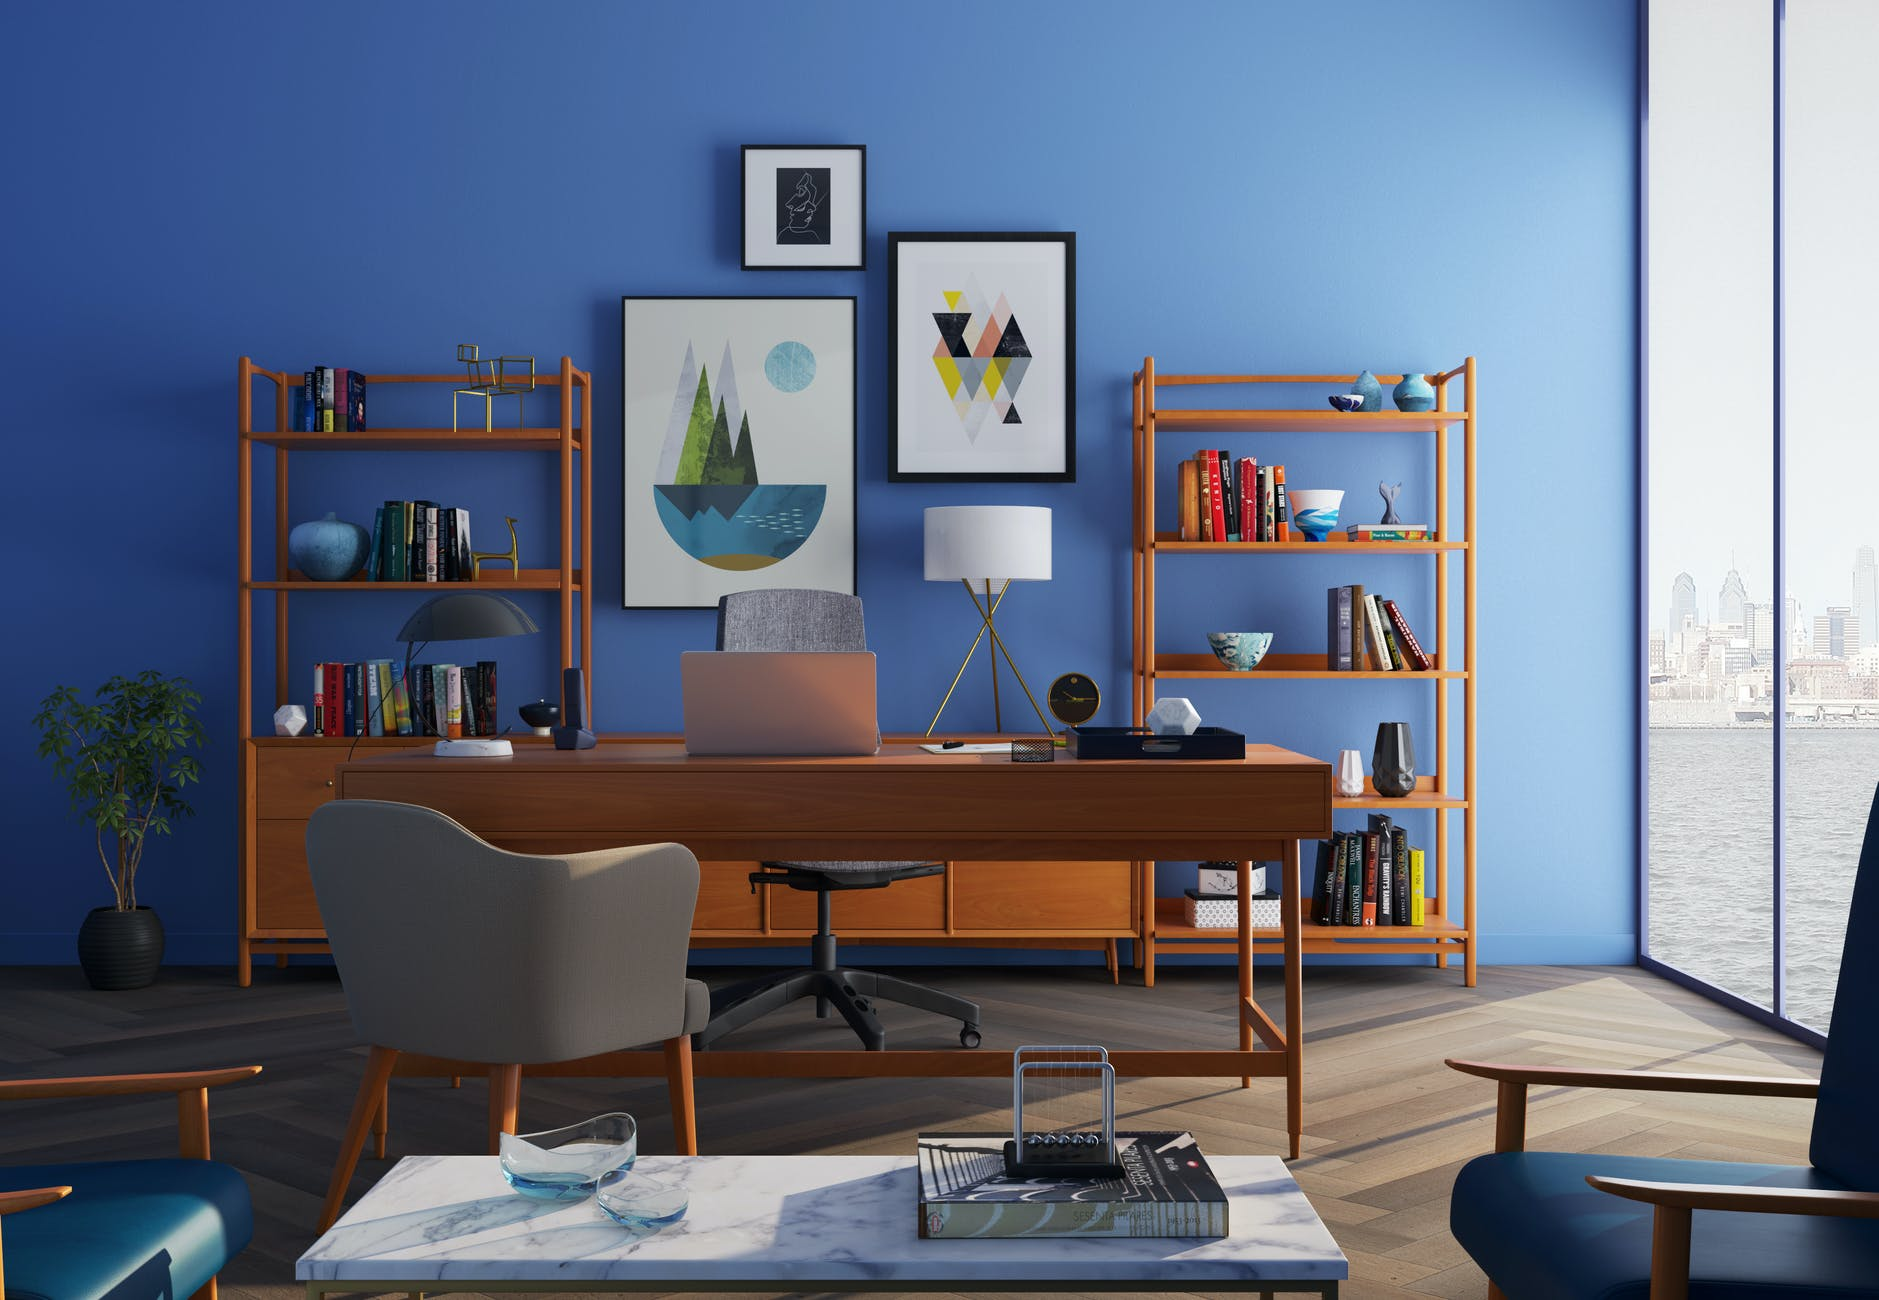 10 Tried-and-True Secrets for a Productive Home Office